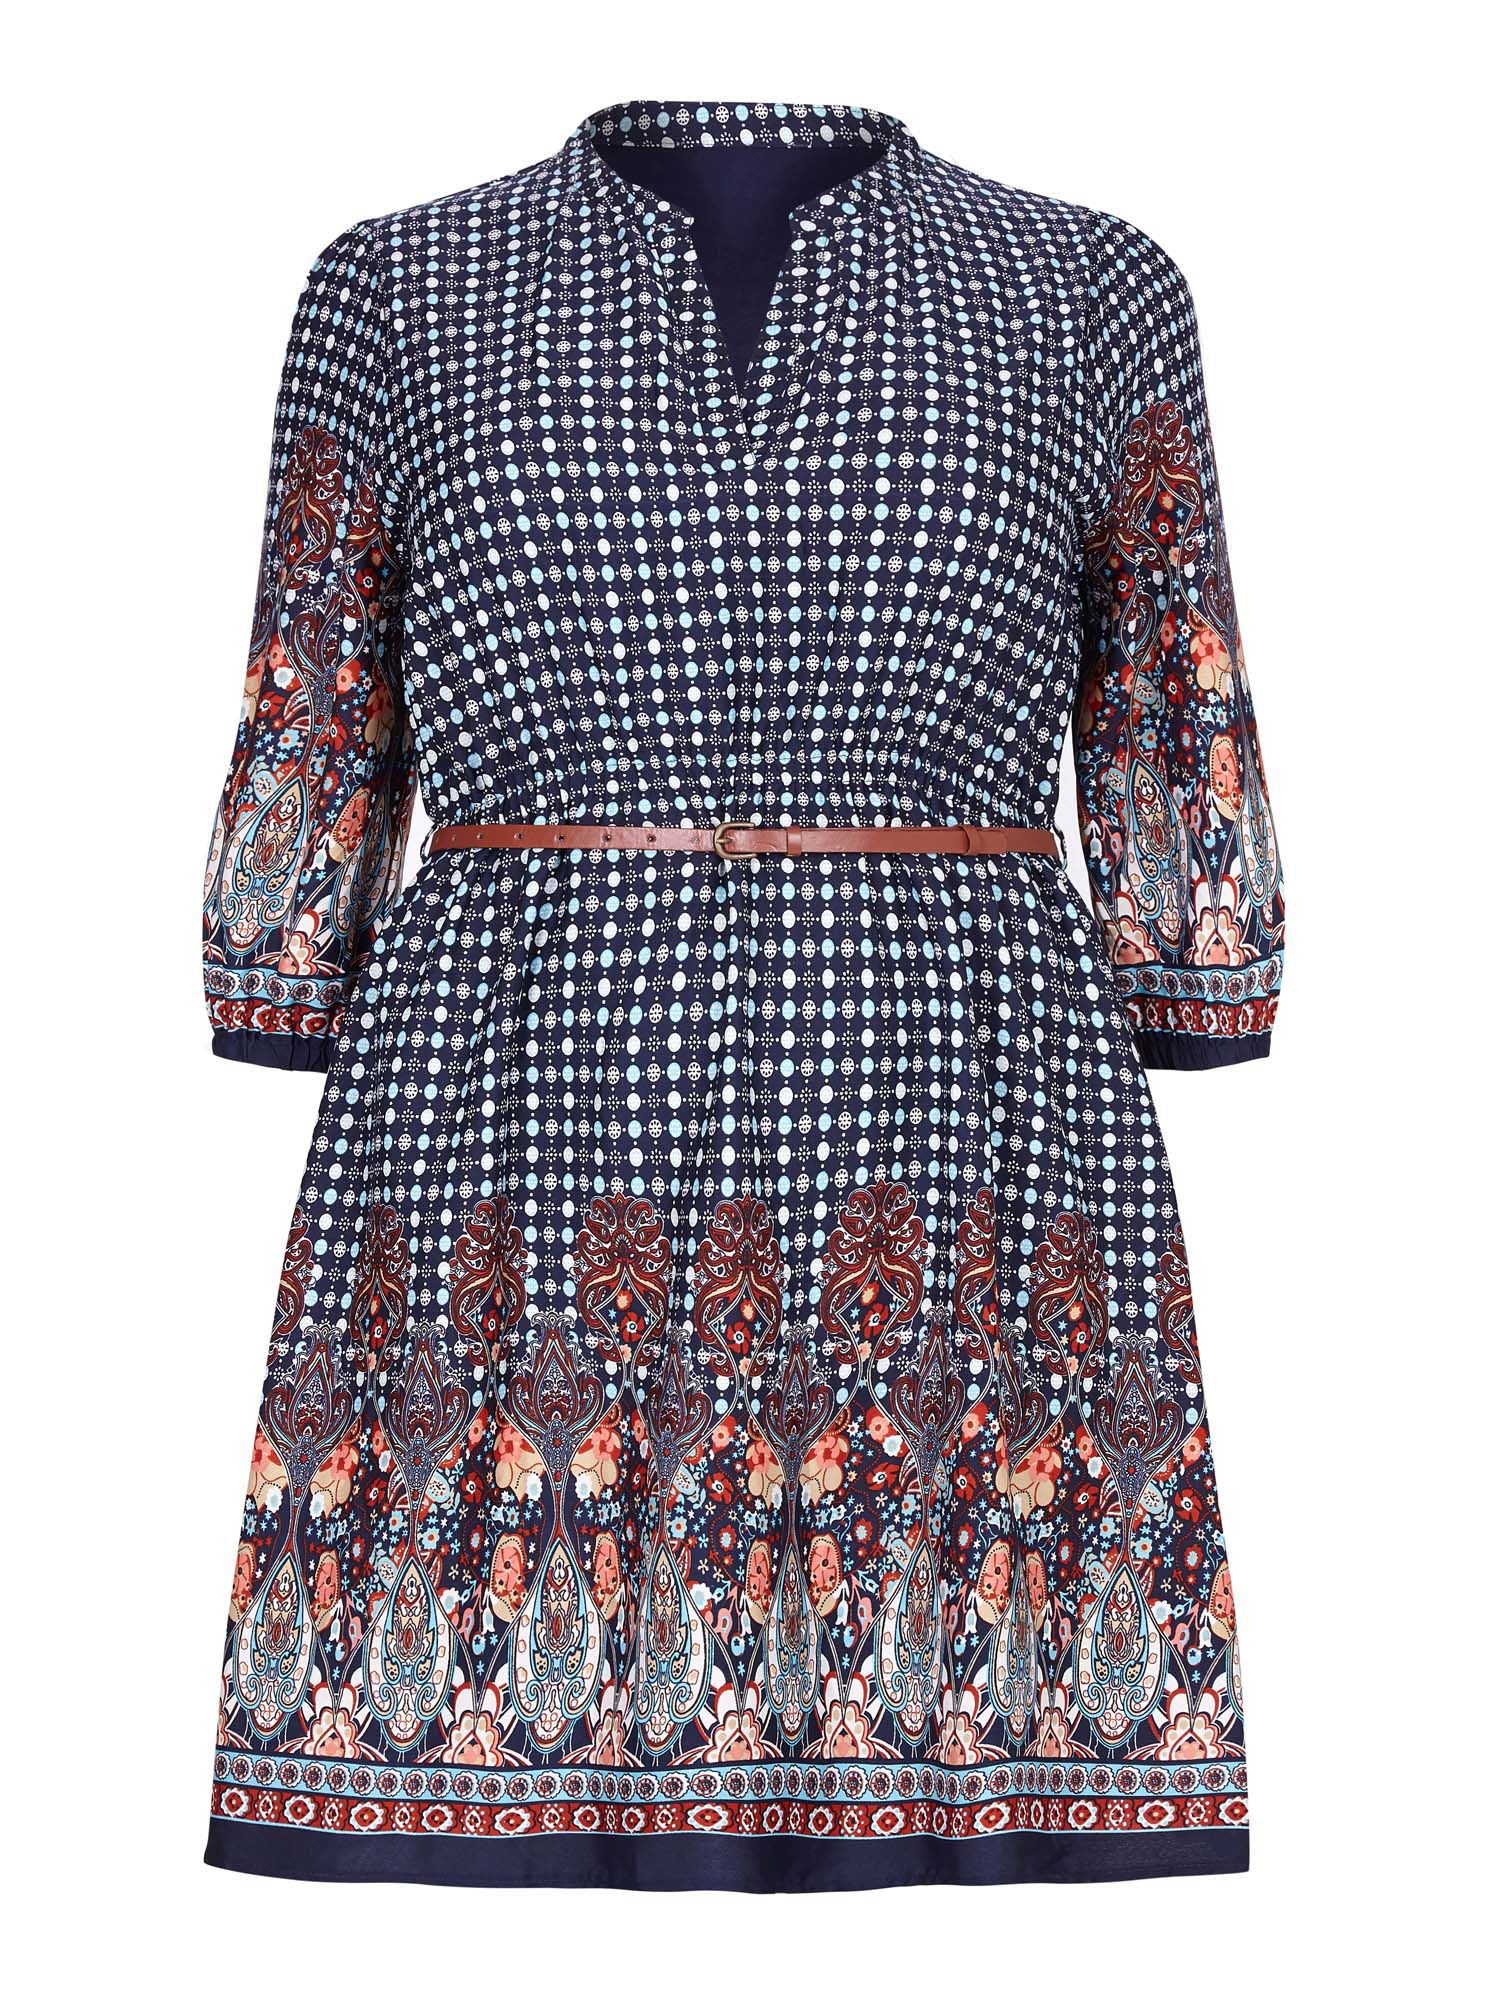 Yumi Curves Yumi Curves Yumi Curves Belted Dress With Tile Print, Navy